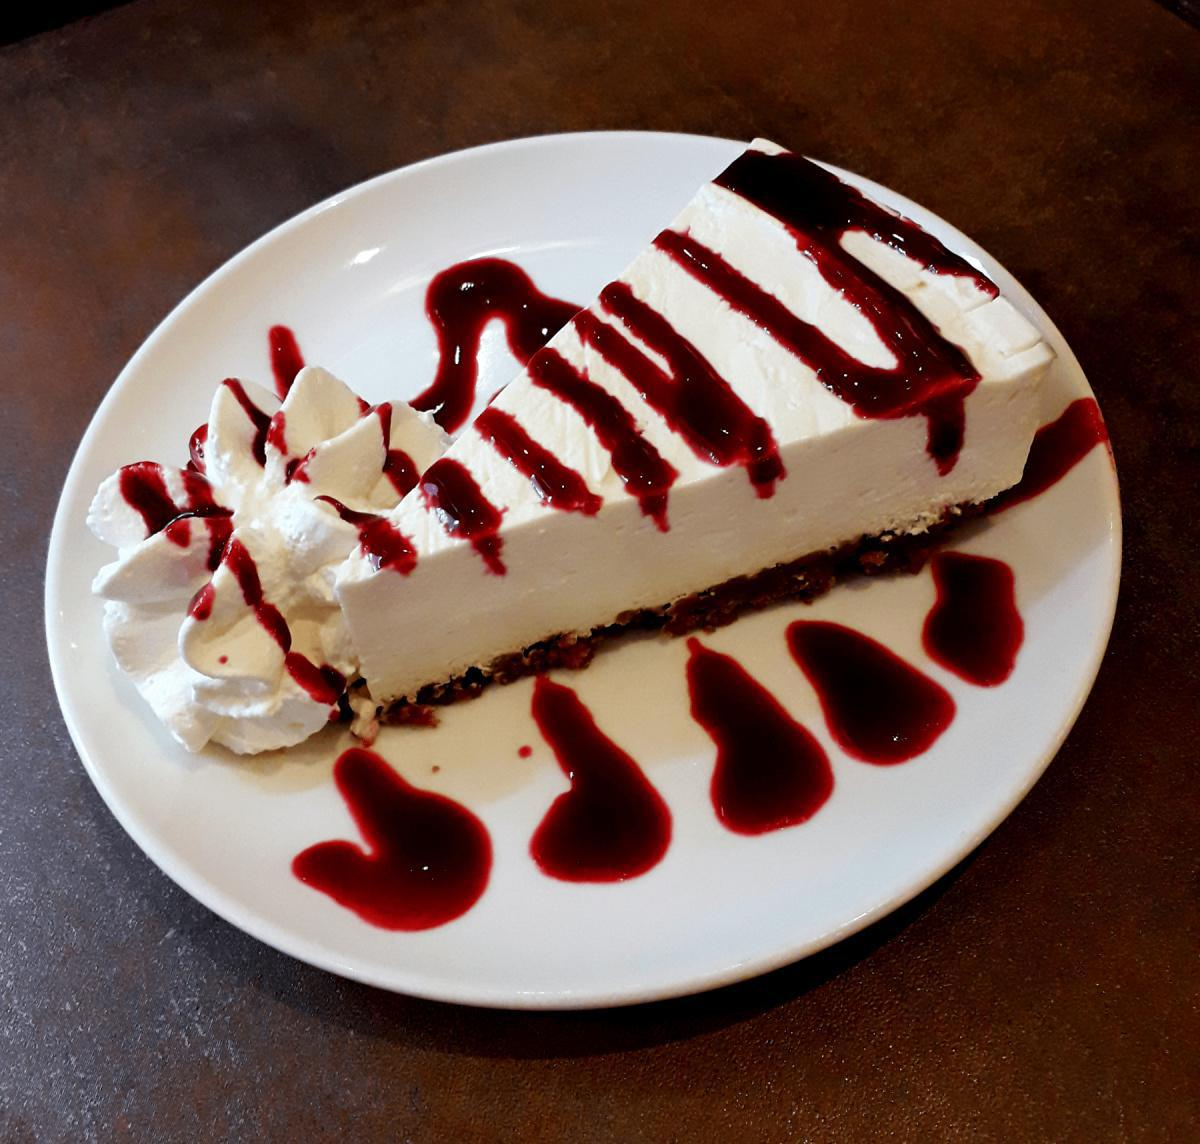 Homemade Cheesecake and its Coulis